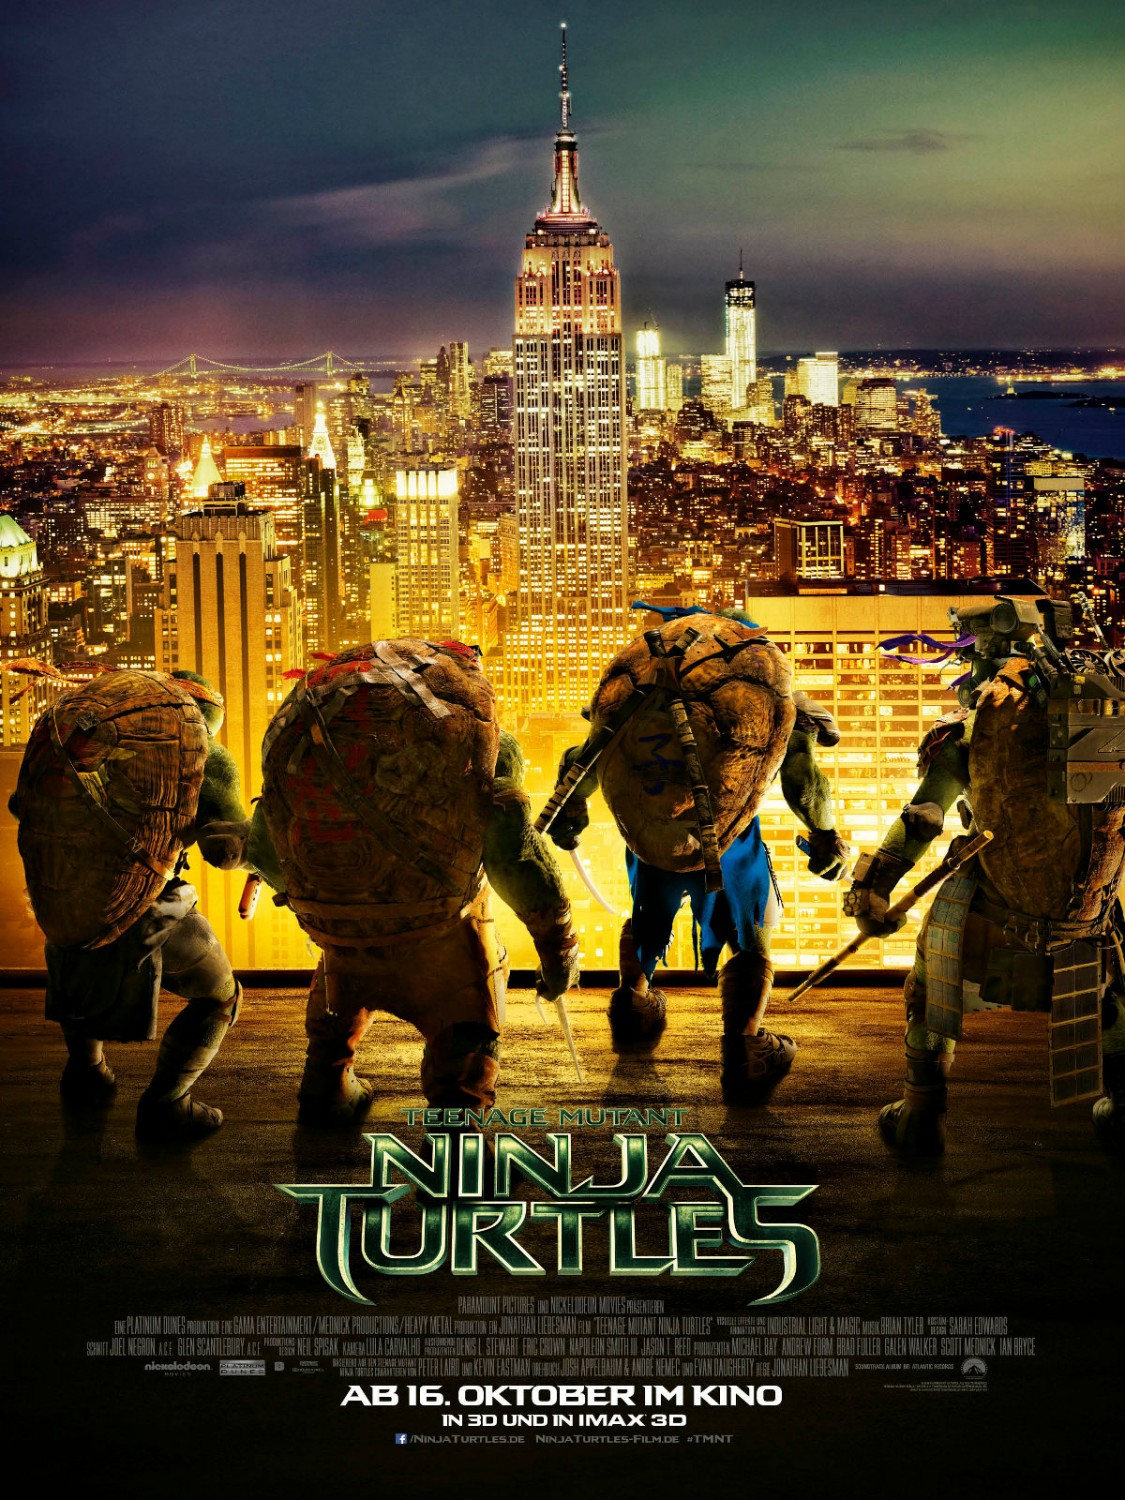 Teenage Mutant Ninja Turtles-Official Poster Banner PROMO XLG-01AGOSTO2014